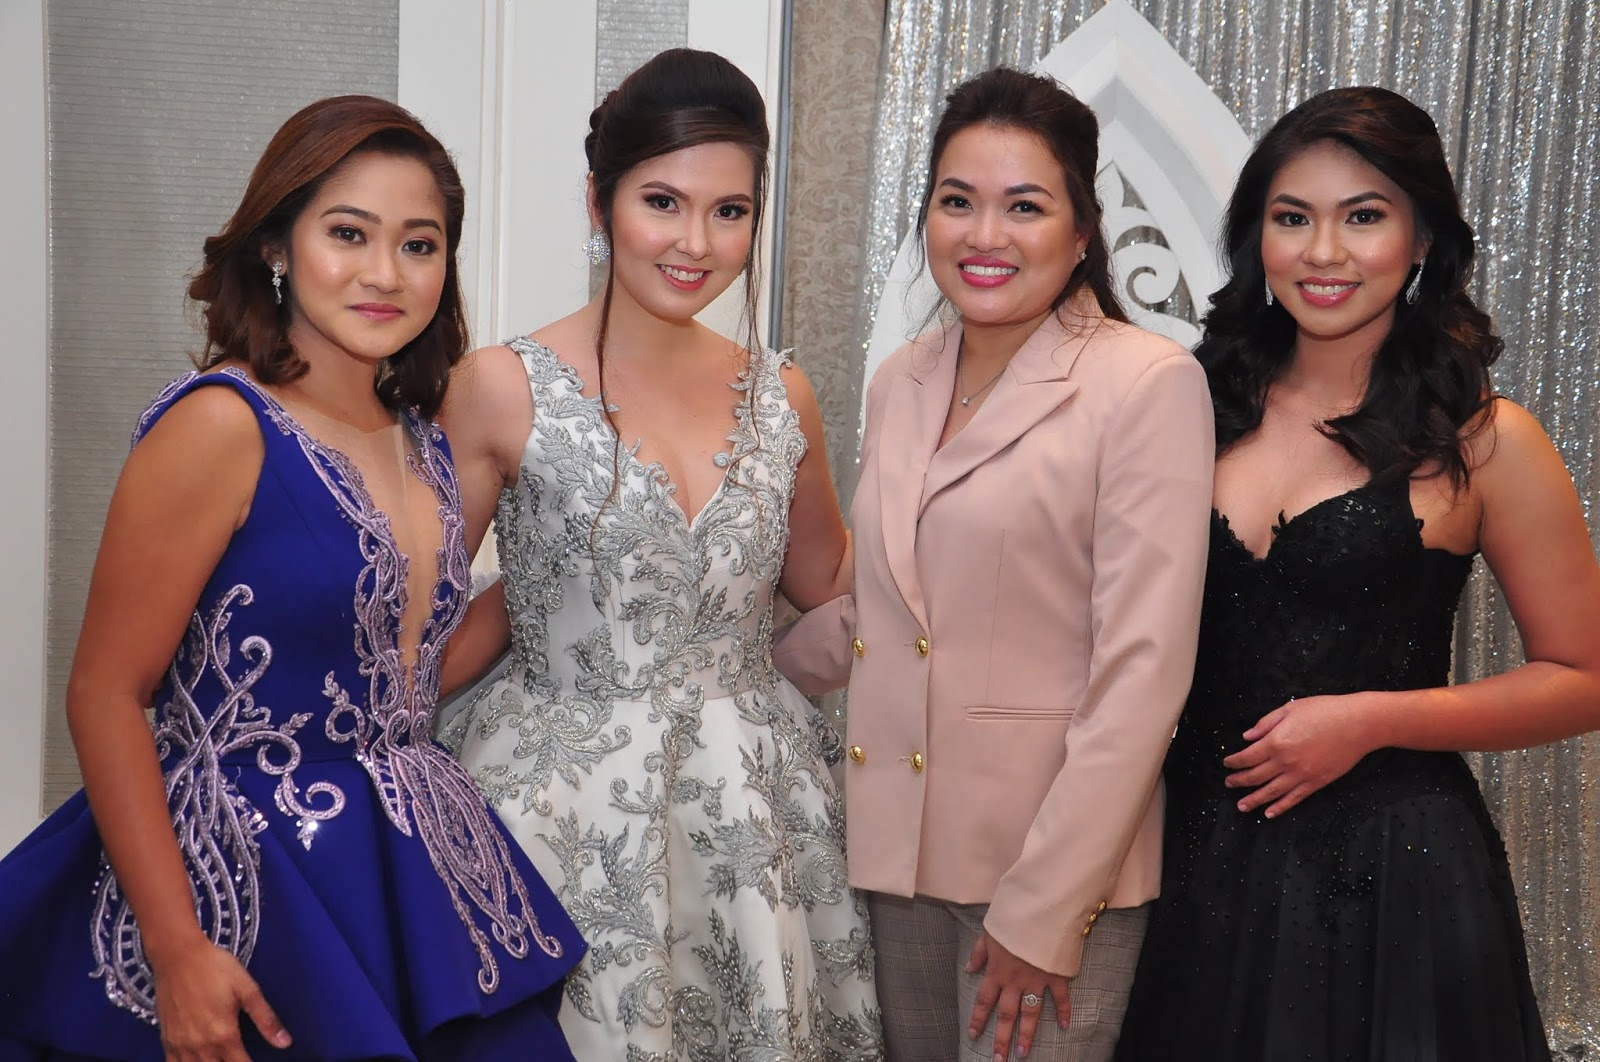 Bridal gown designer Zandra Lim marks 15 years with charity event